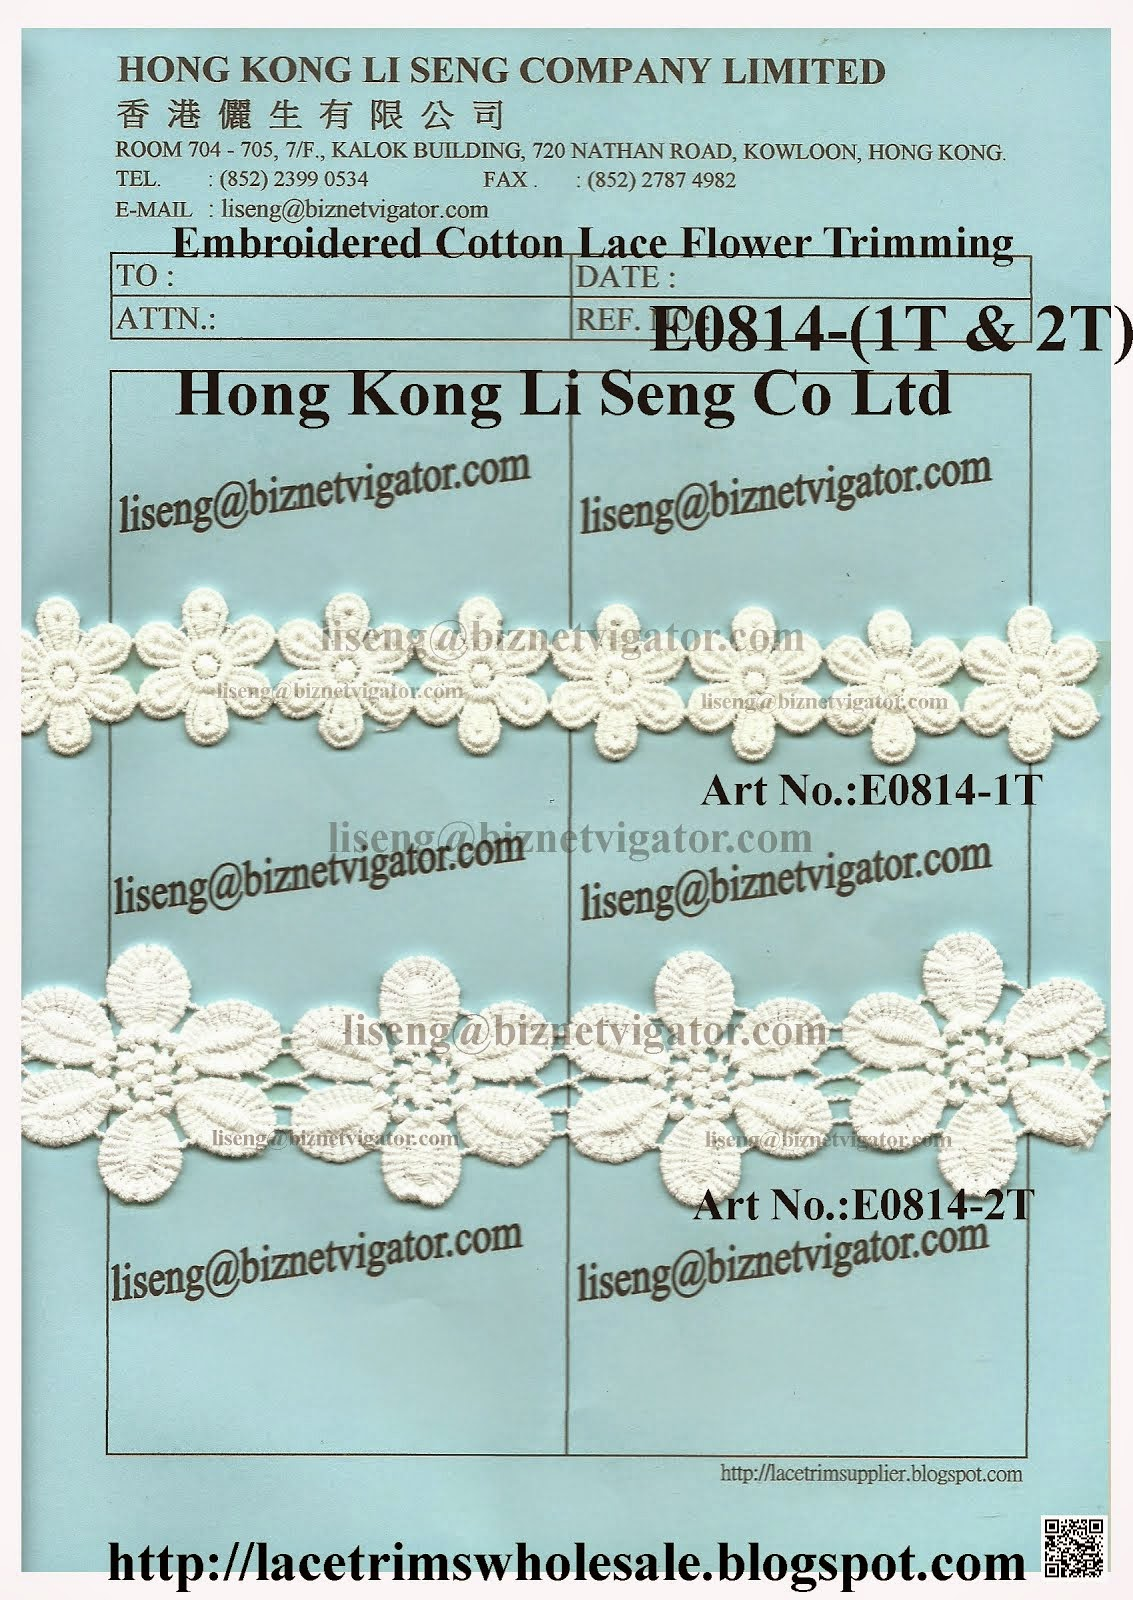 Embroidered Cotton Flower Motif Trimming Manufacturer Wholesale Supplier - Hong Kong Li Seng Co Ltd